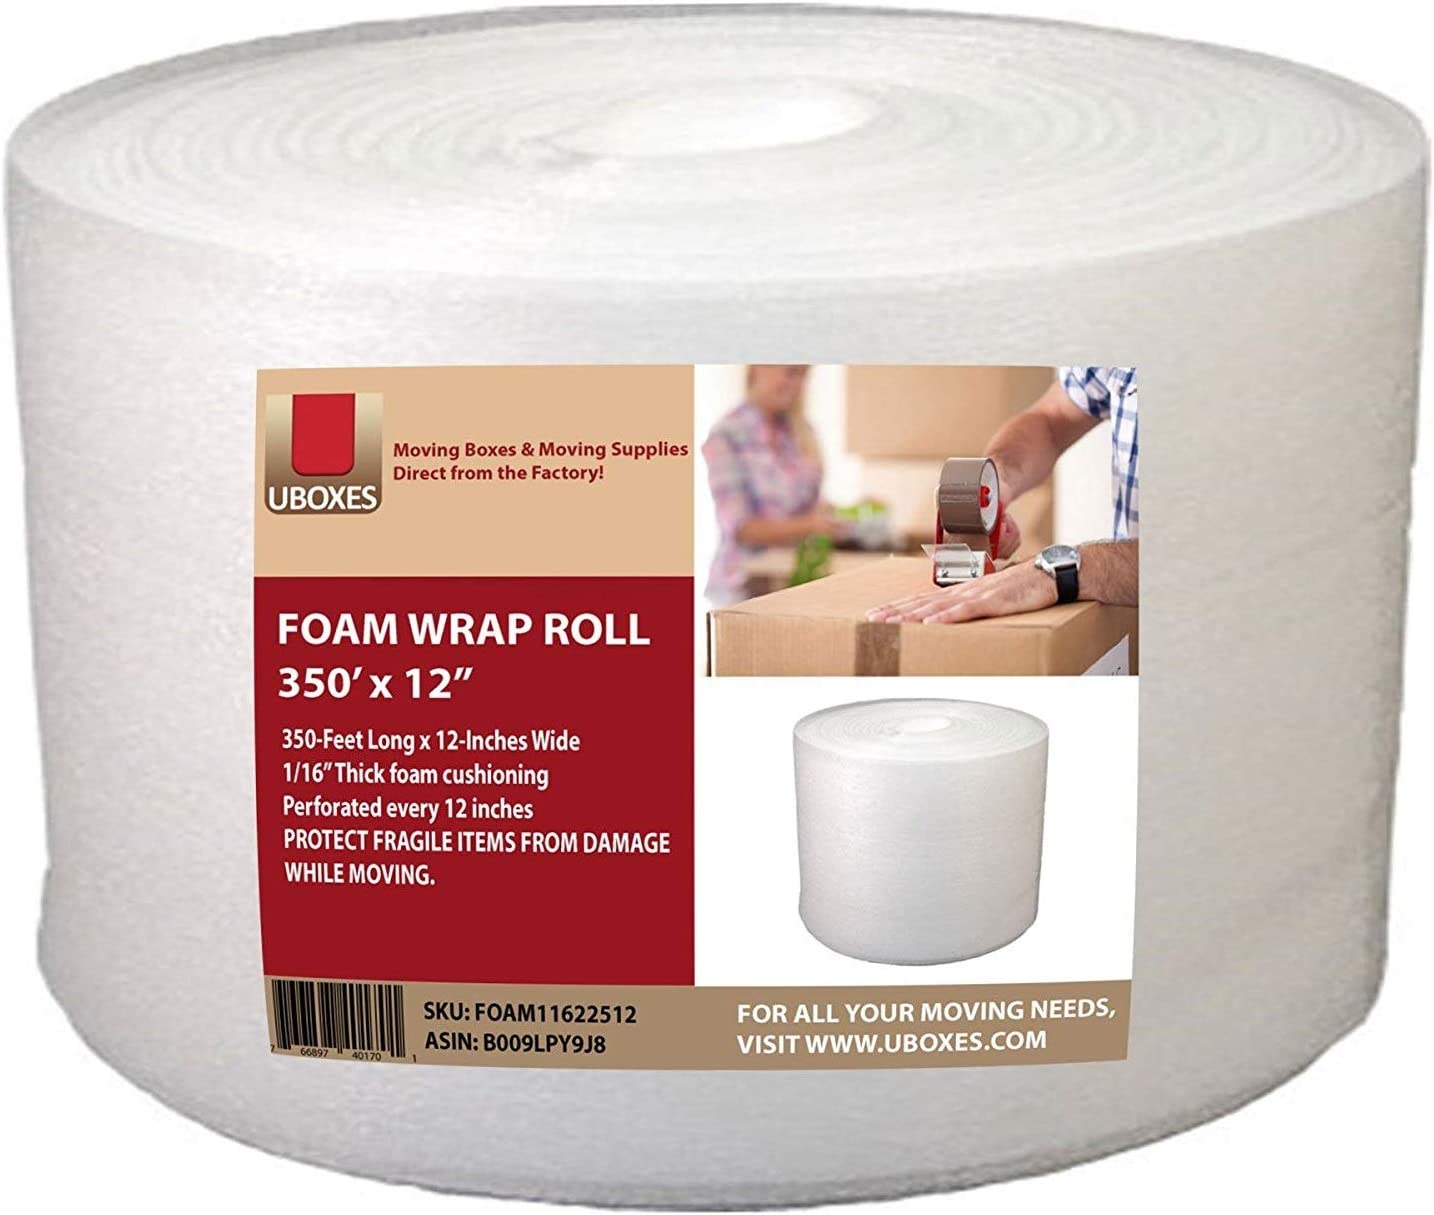 "UBOXES Foam Wrap Roll 320' x 12"" Wide 1/16 Thick Cushion - 12"" Perforation: Office Products"